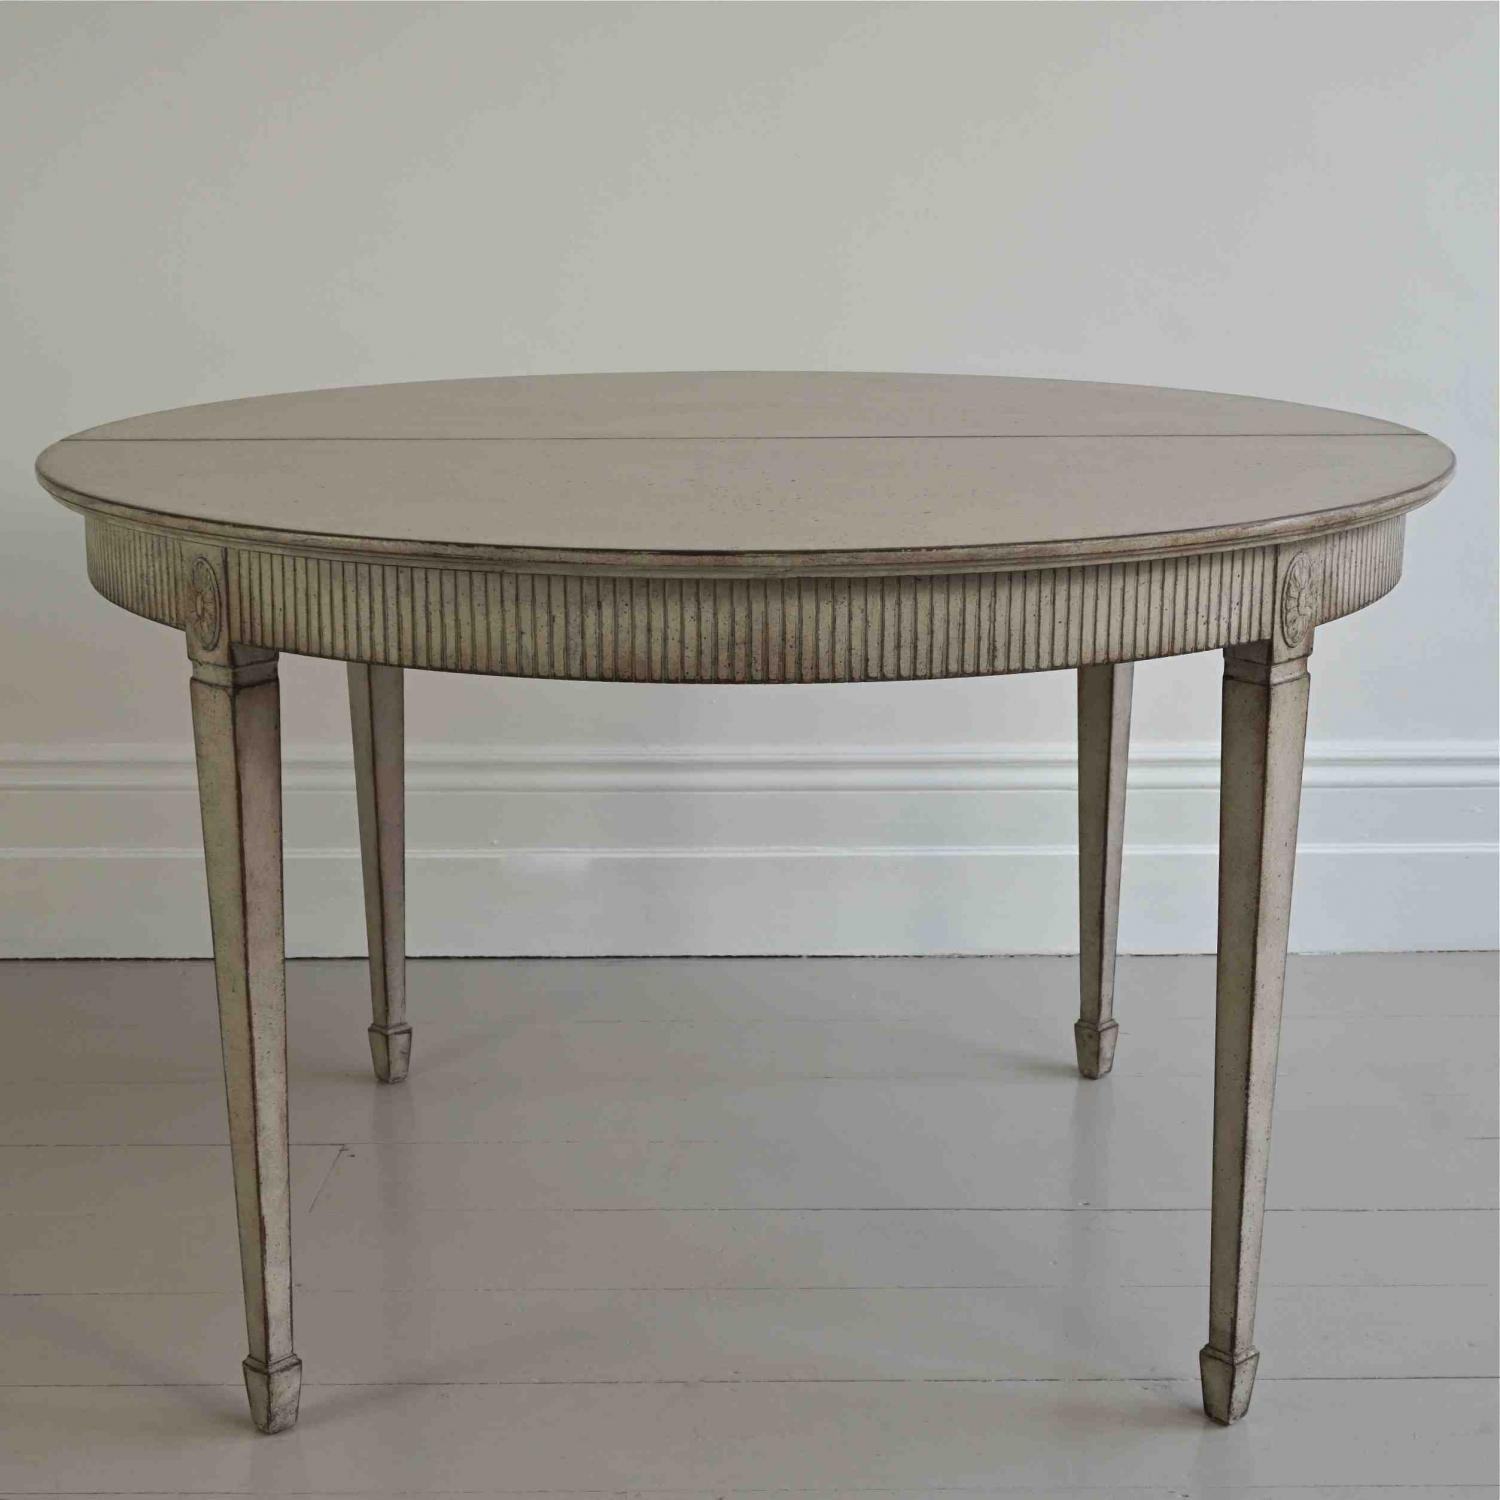 FINE GUSTAVIAN STYLE EXTENDING DINING TABLE